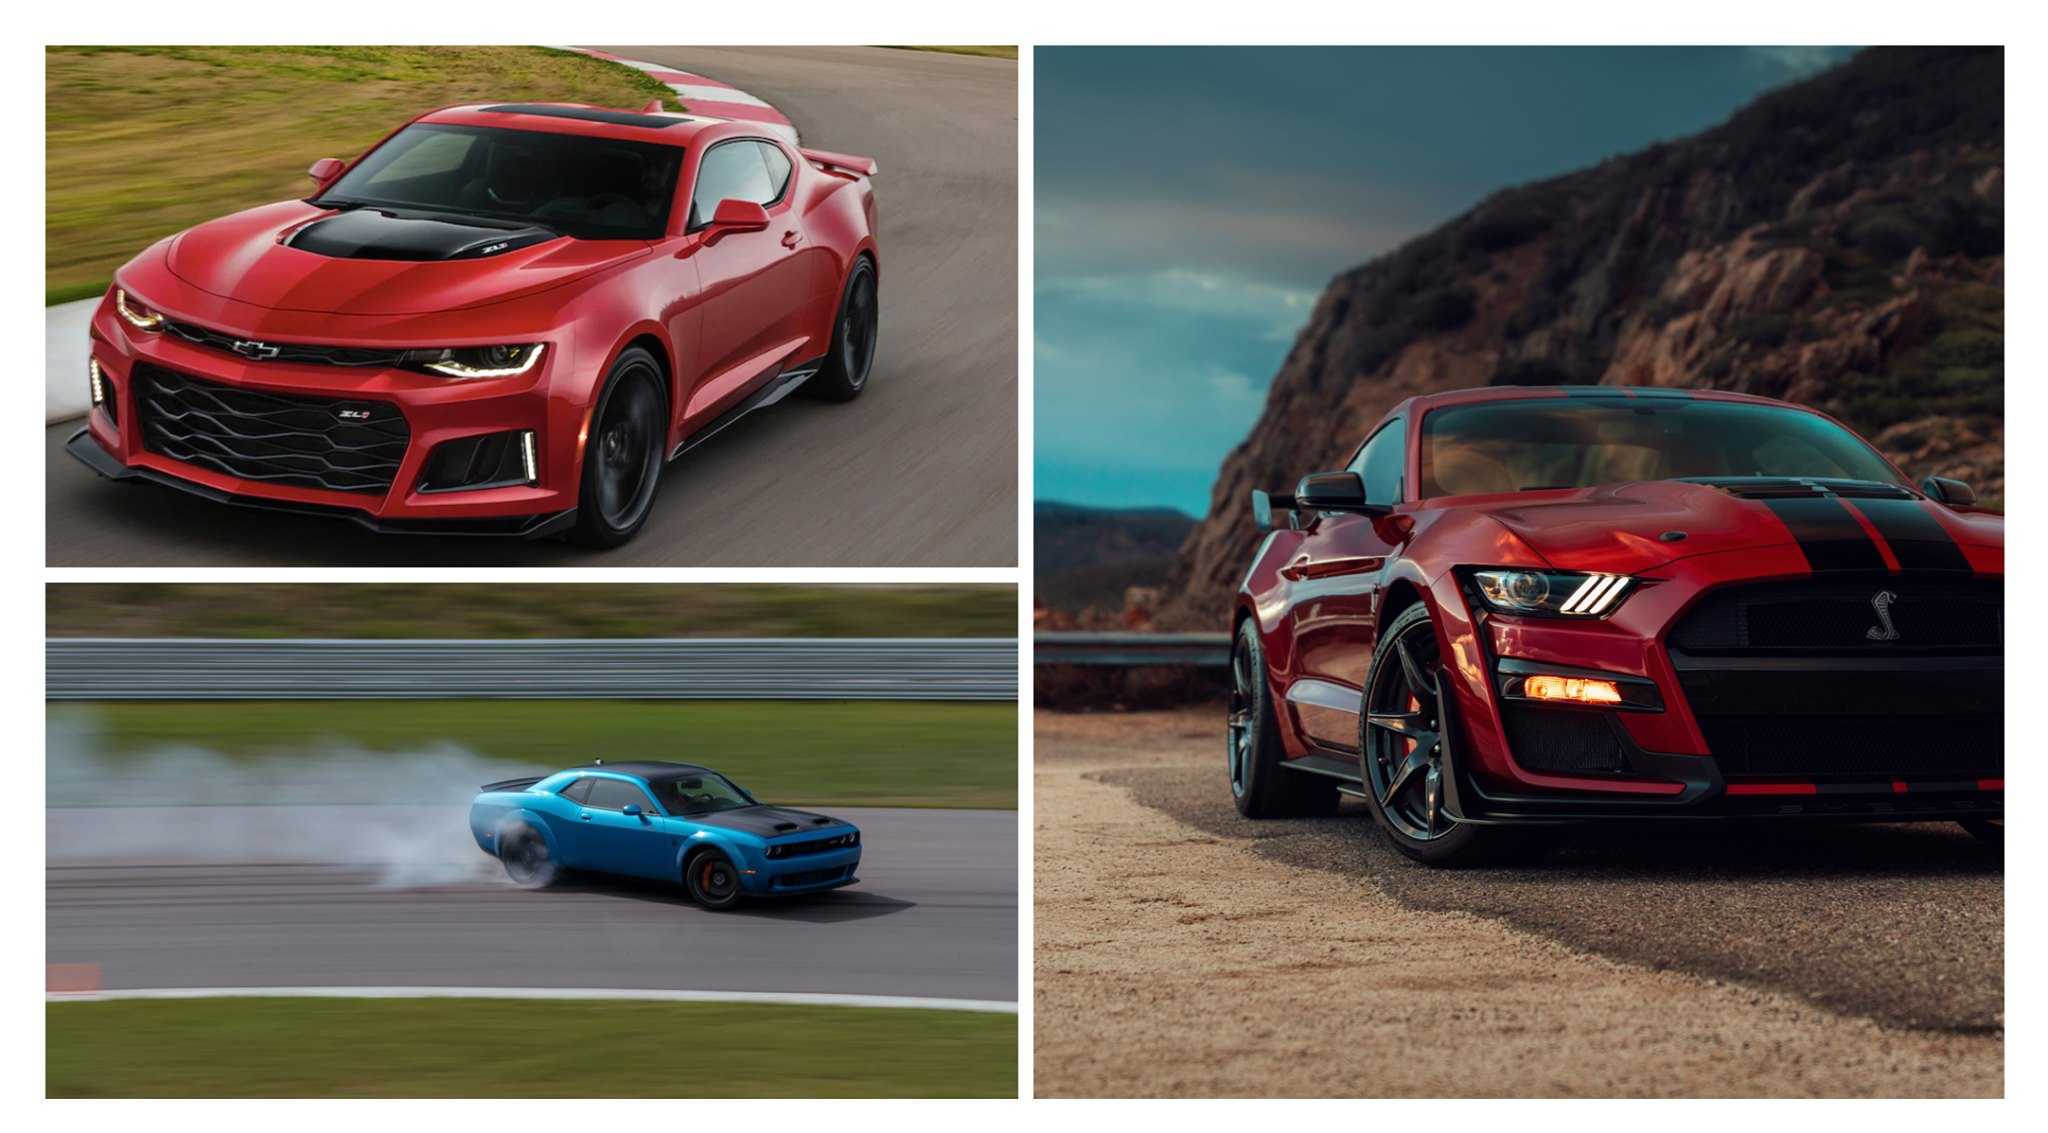 American muscle comparativa Shelby GT500 - Challenger Redeye y Camaro ZL1-jpg